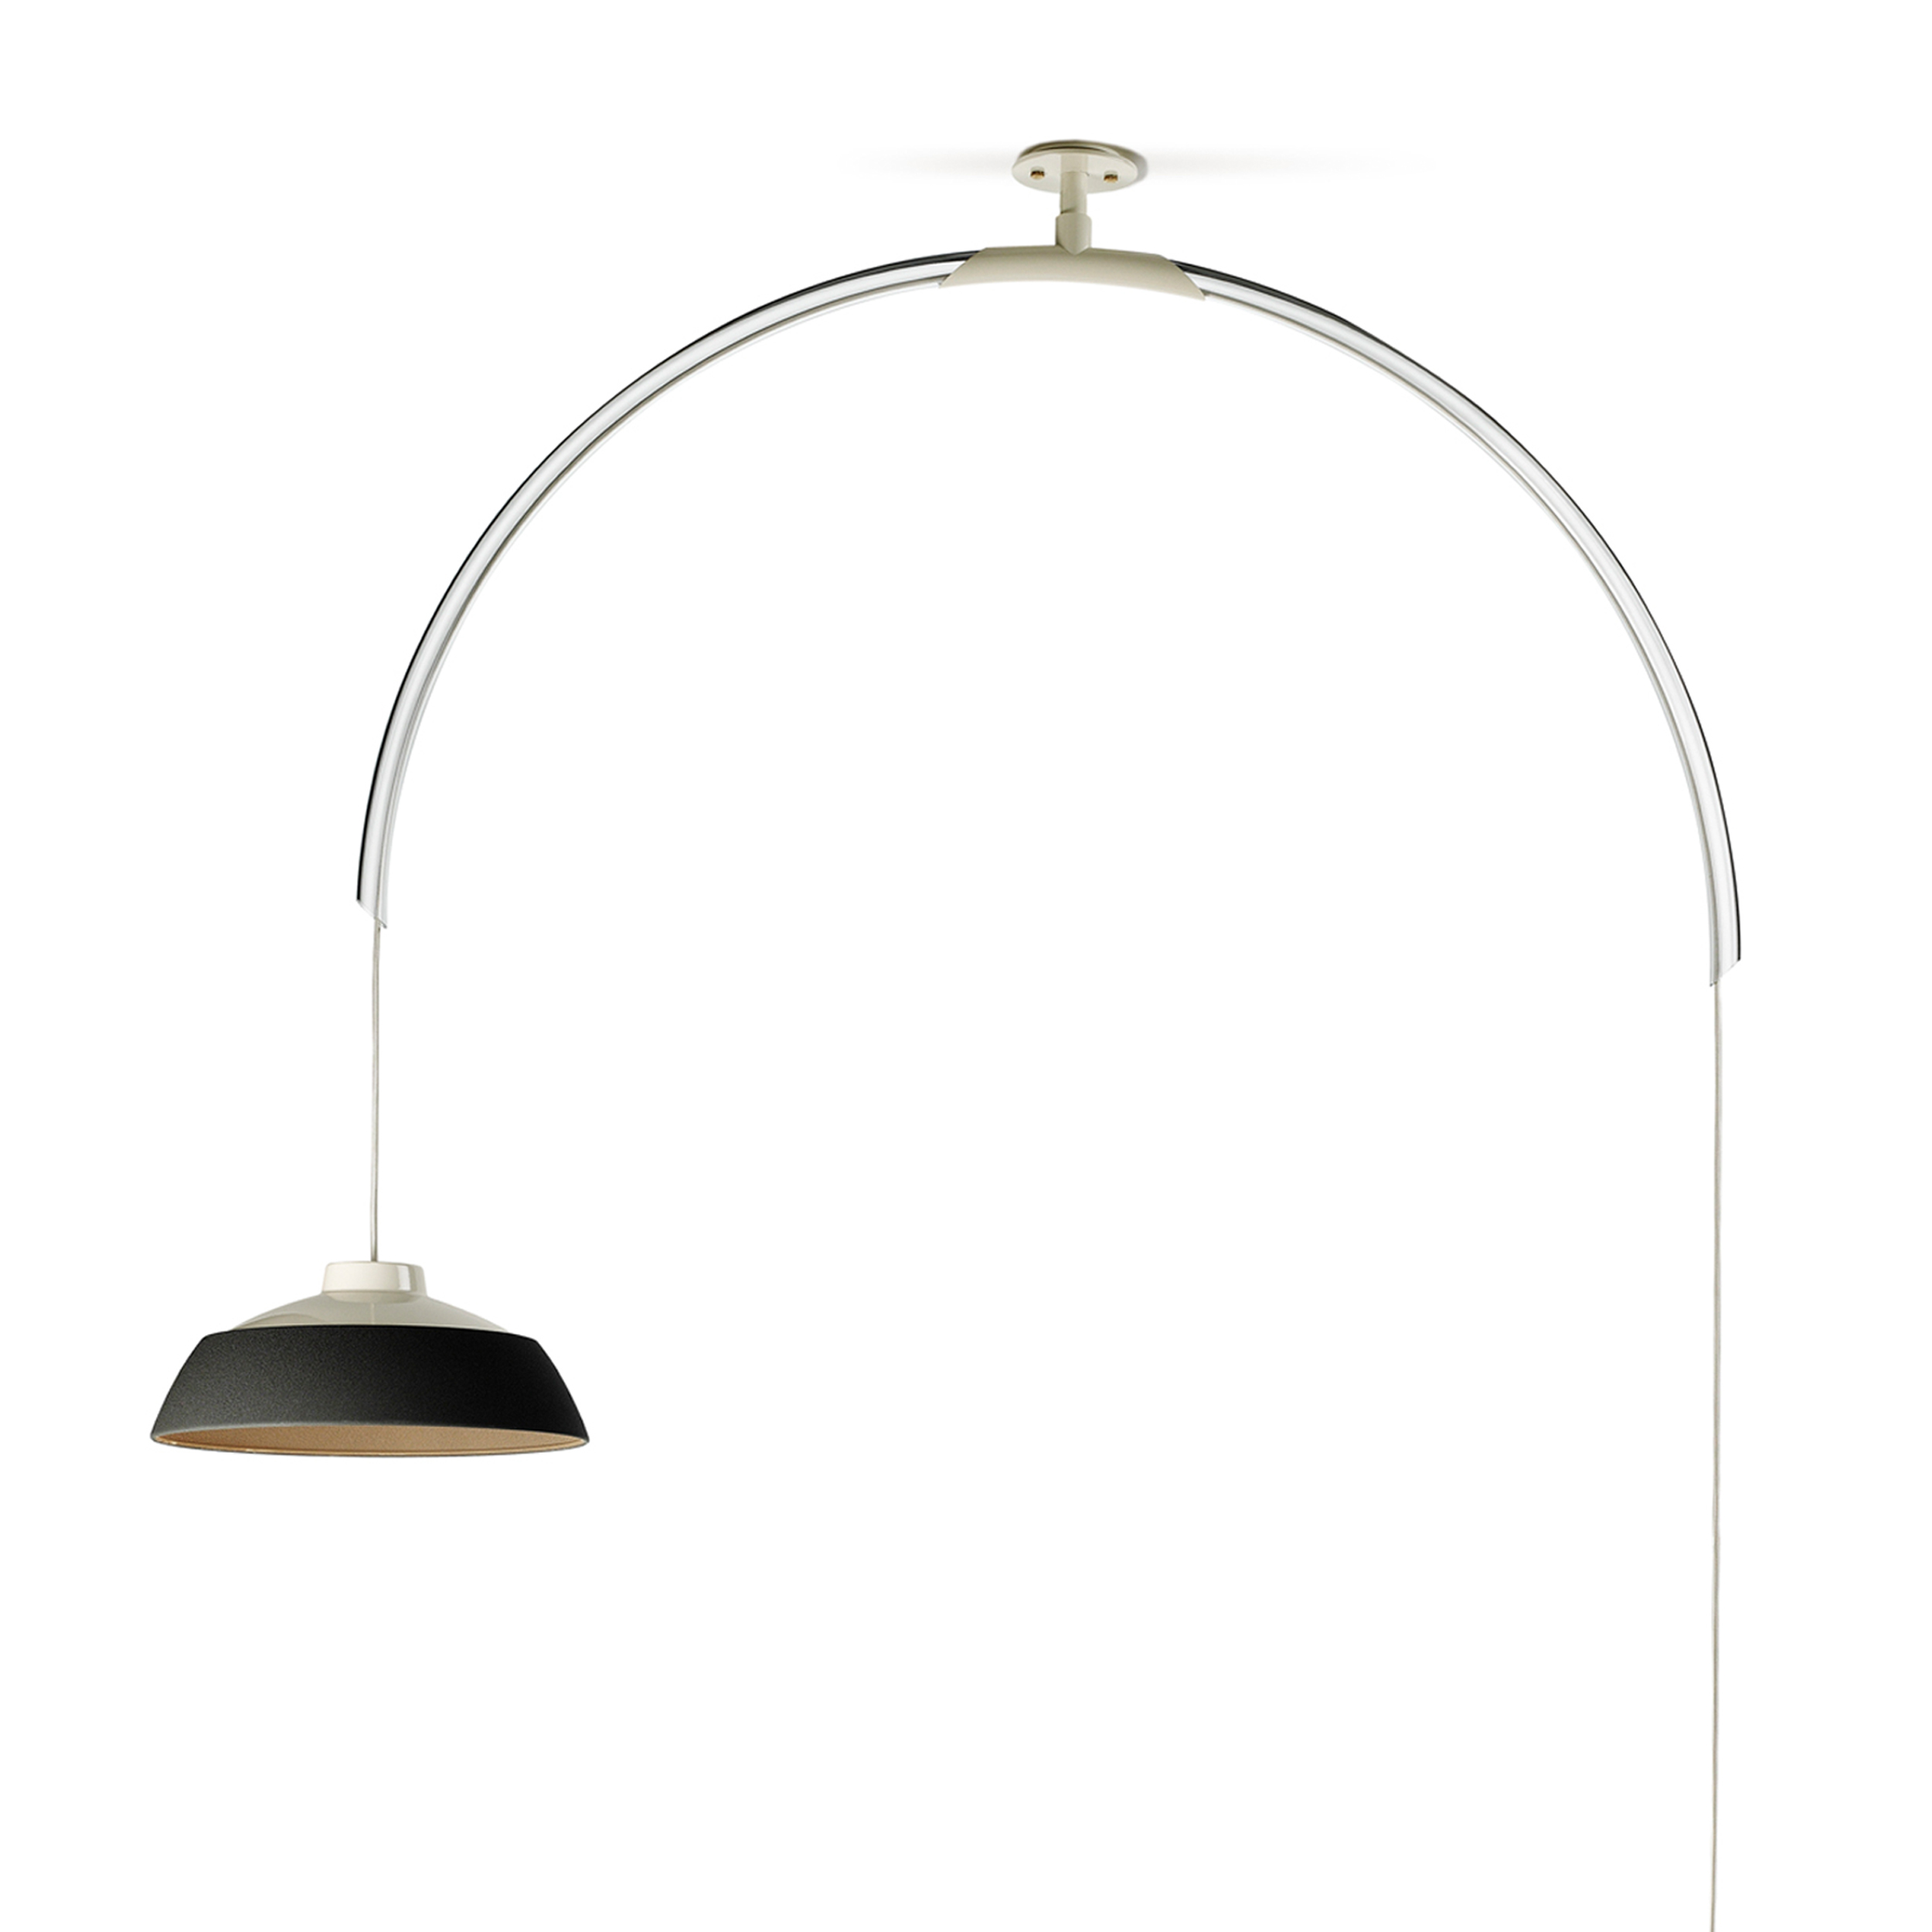 Mod 2129 Lampe Suspension LED 25W Blanc Gris